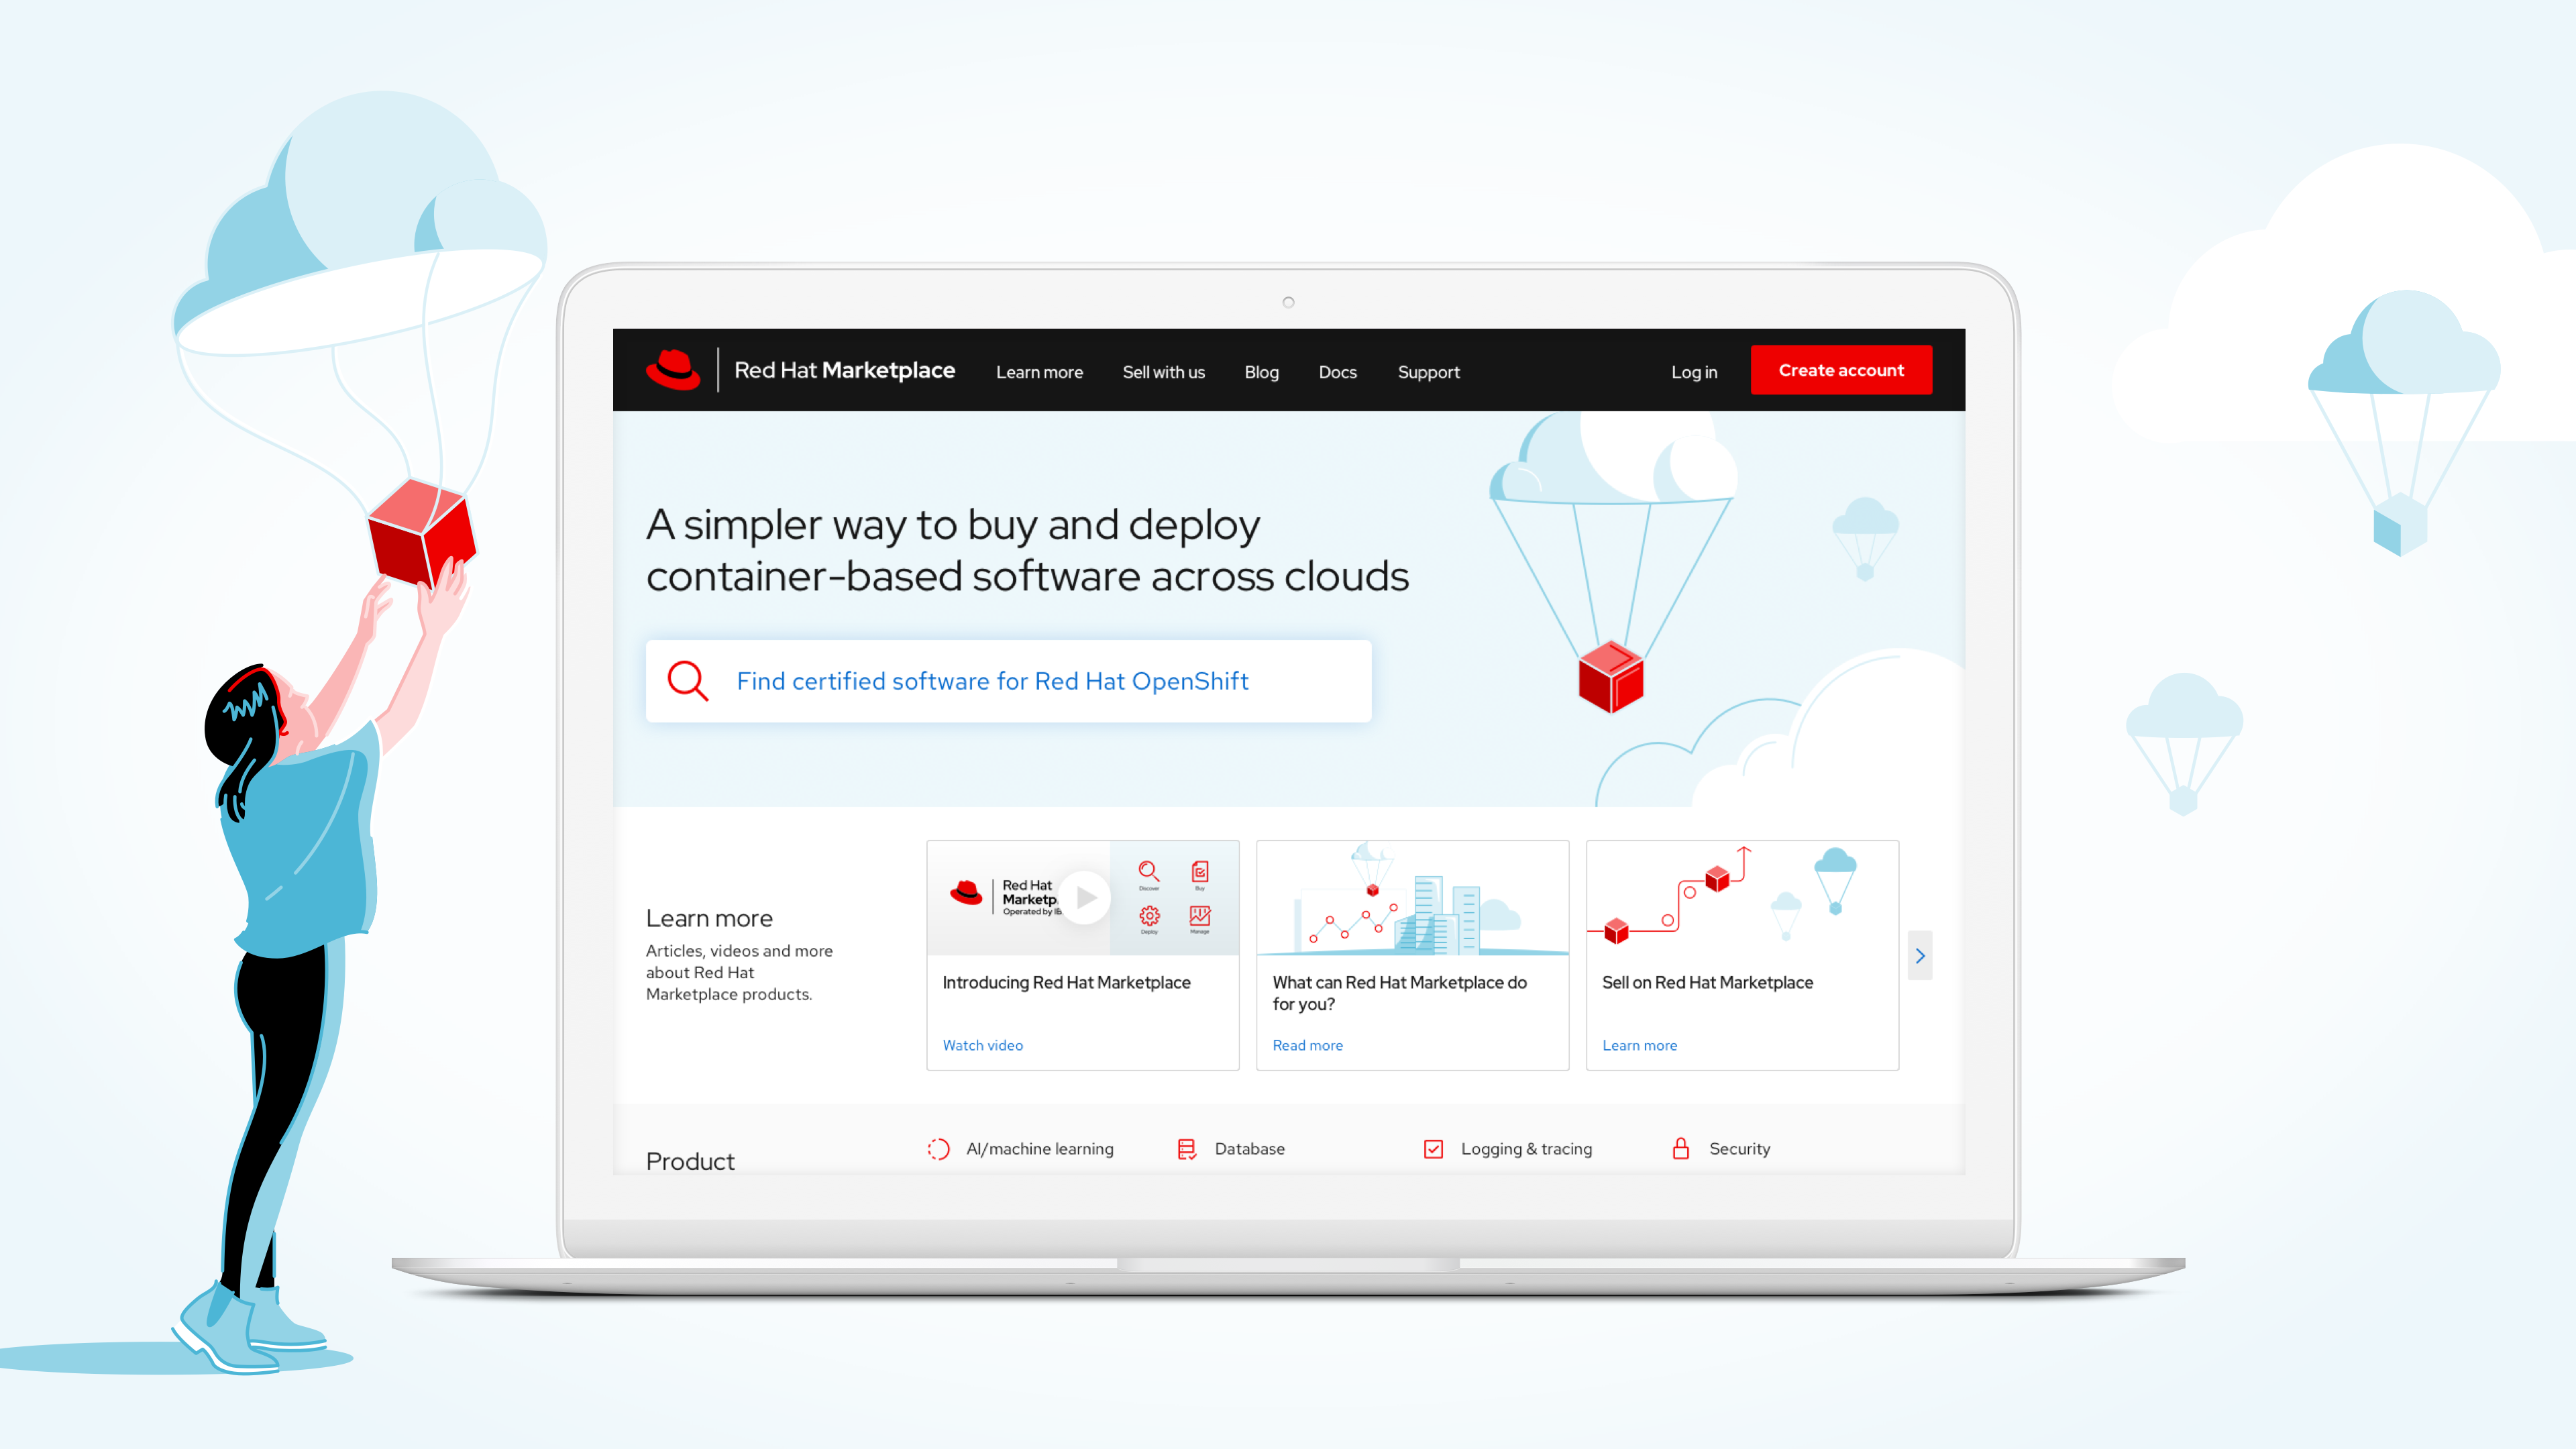 Red Hat Marketplace, Operated by IBM